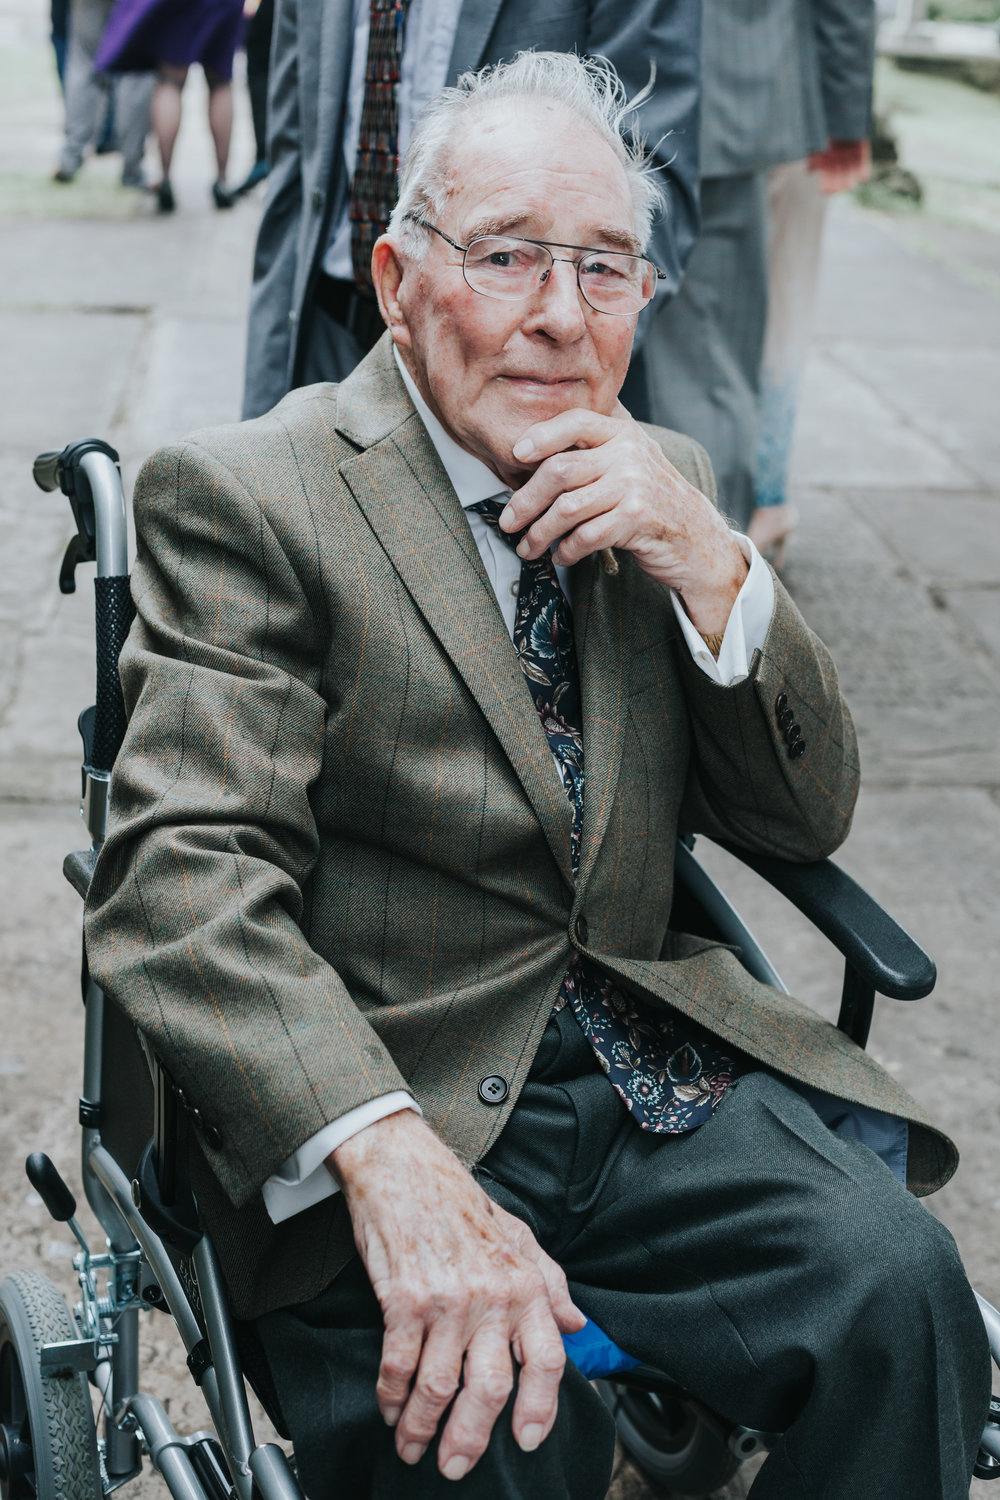 Granddad poses for photo outside church like a pro.